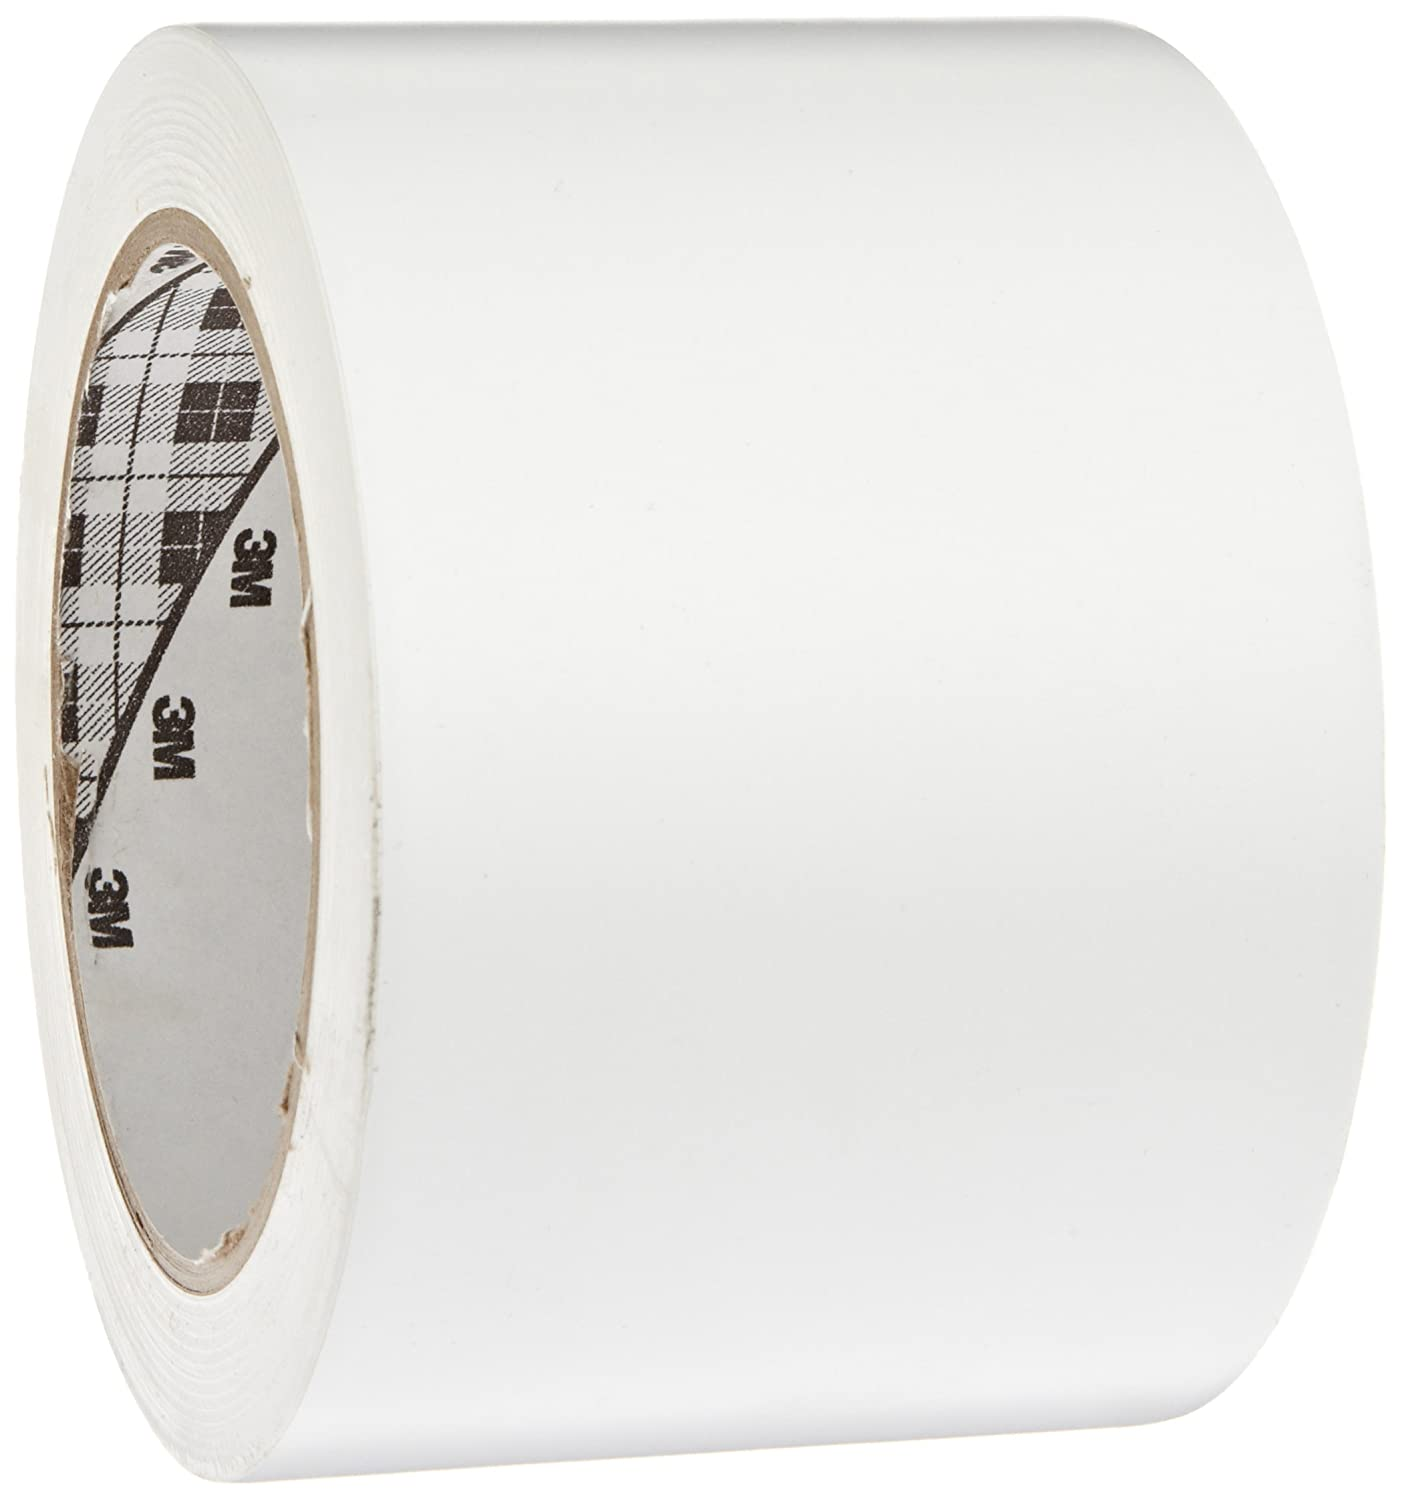 3M General Purpose Vinyl Tape 764, White, 3 in x 36 yd, 5 mil